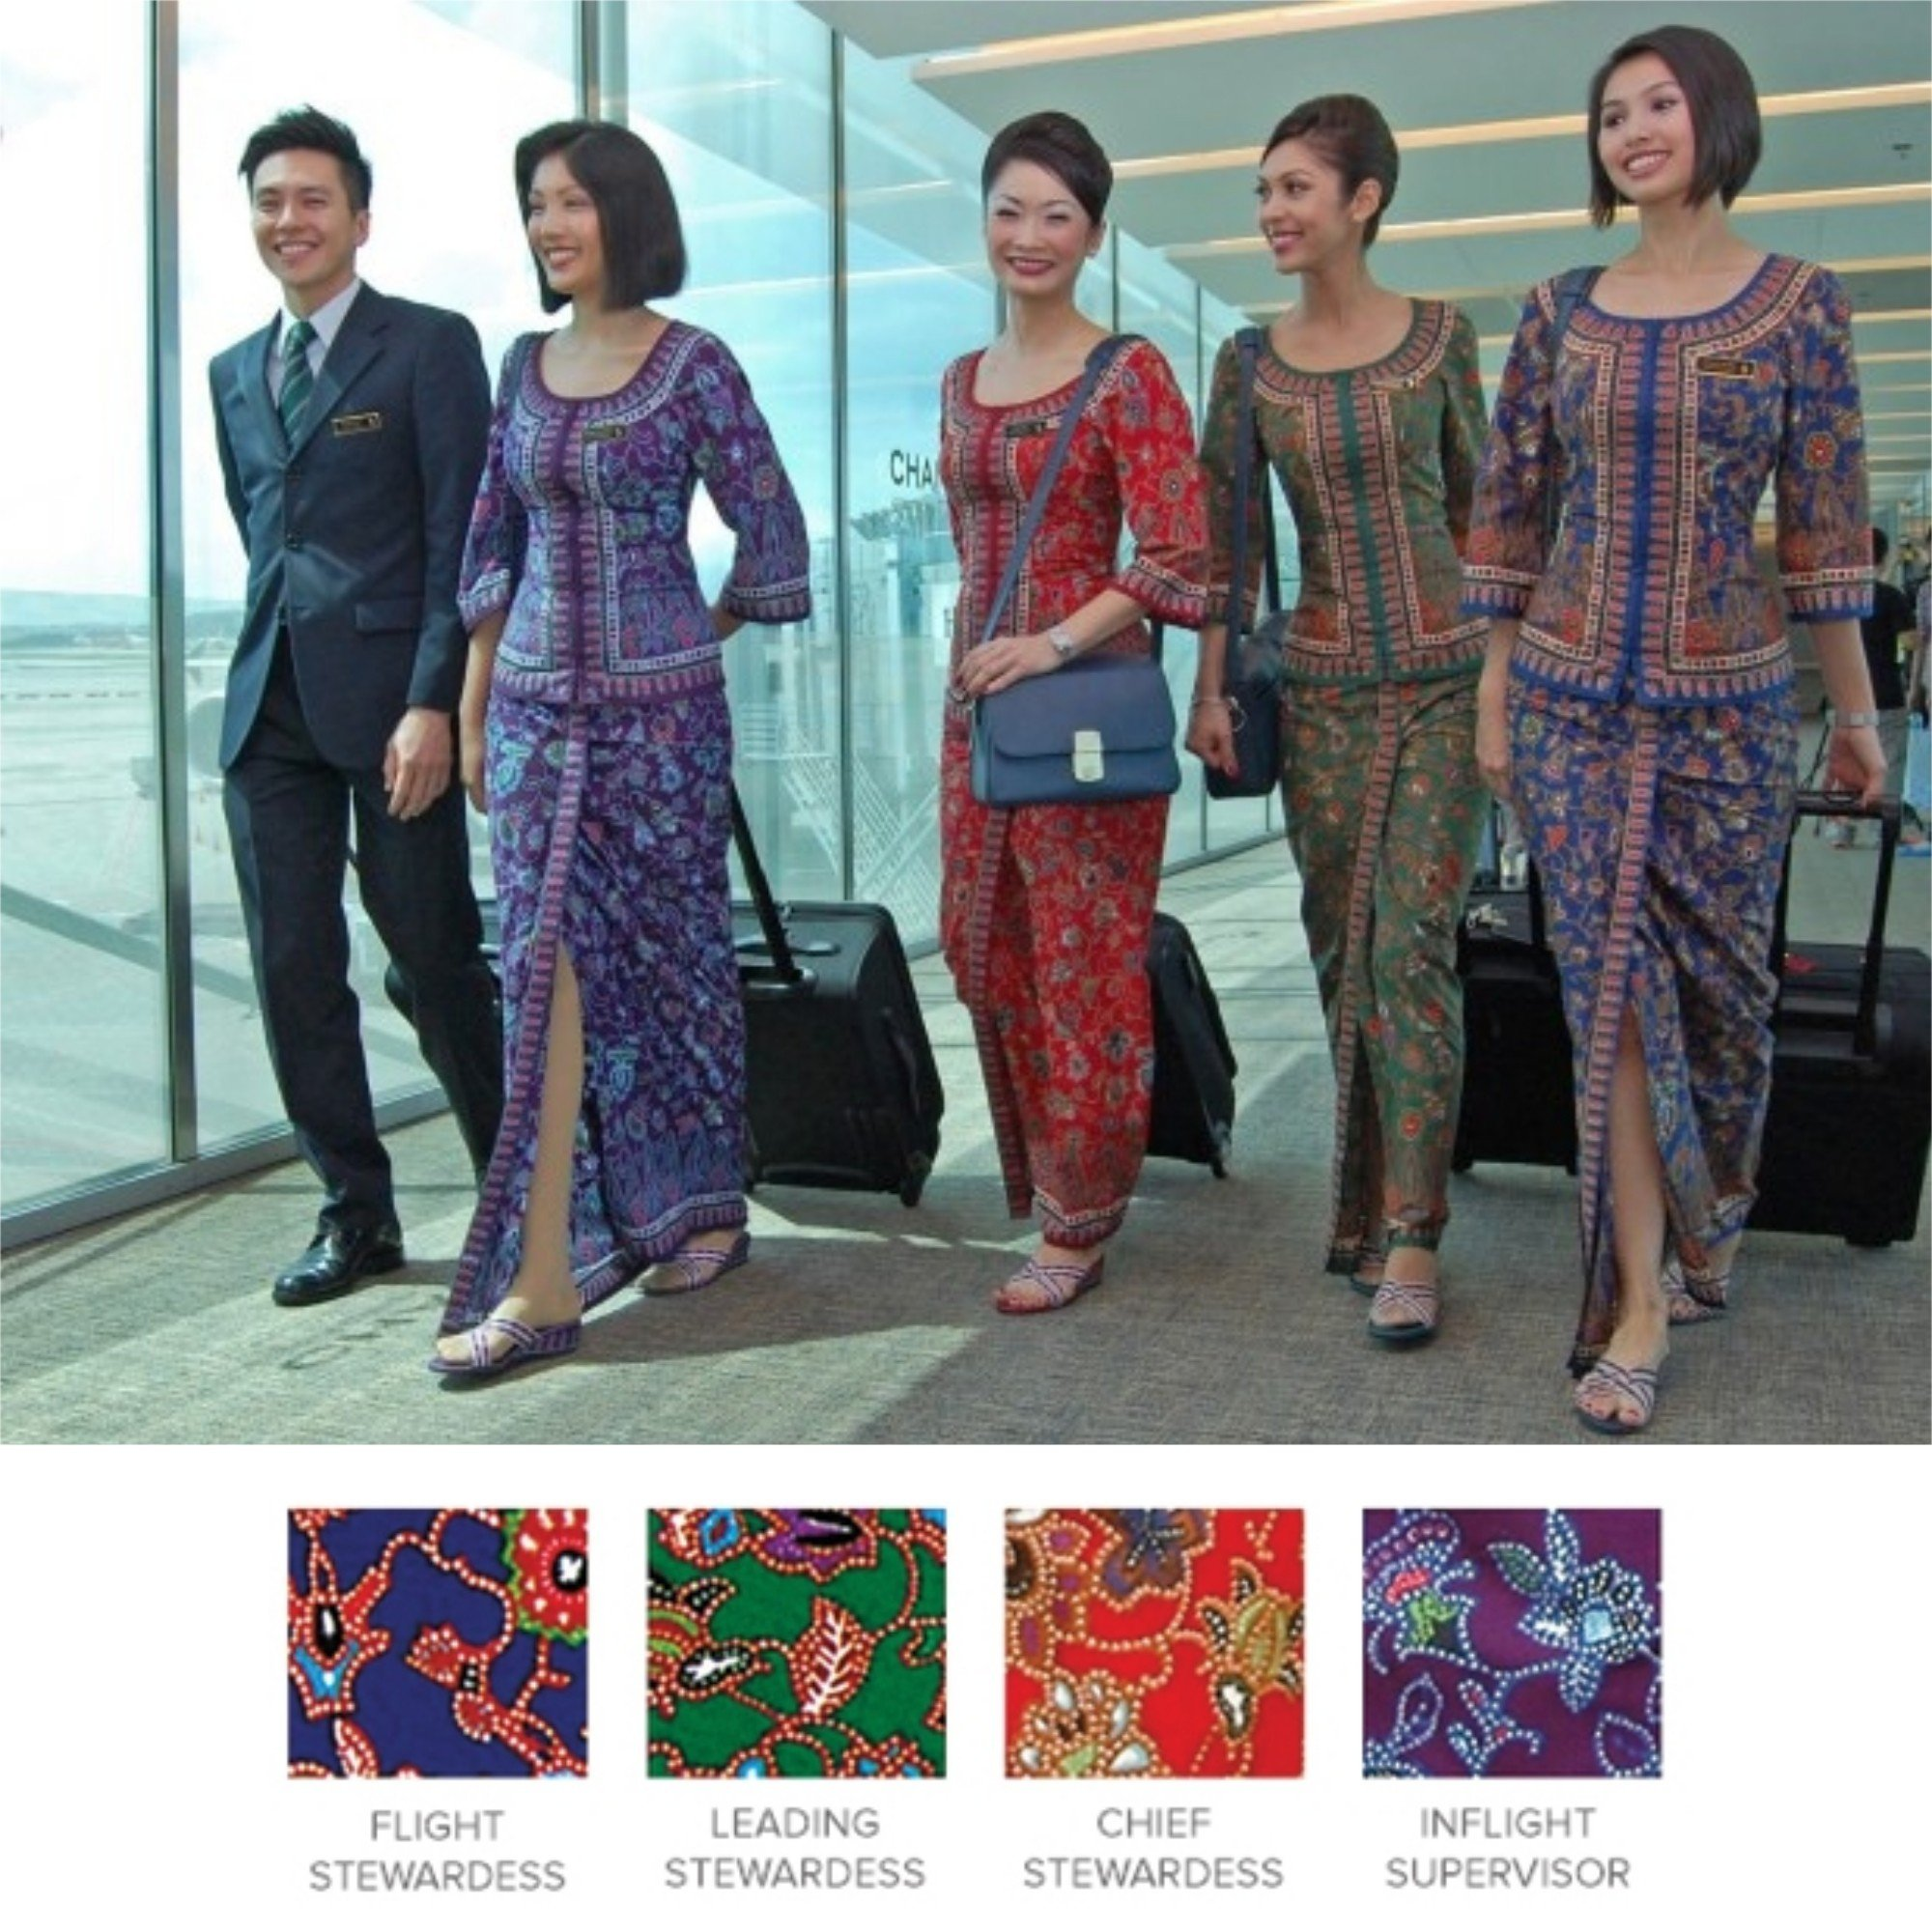 Four coloured uniforms represent the designations of the Singapore girl who wear them